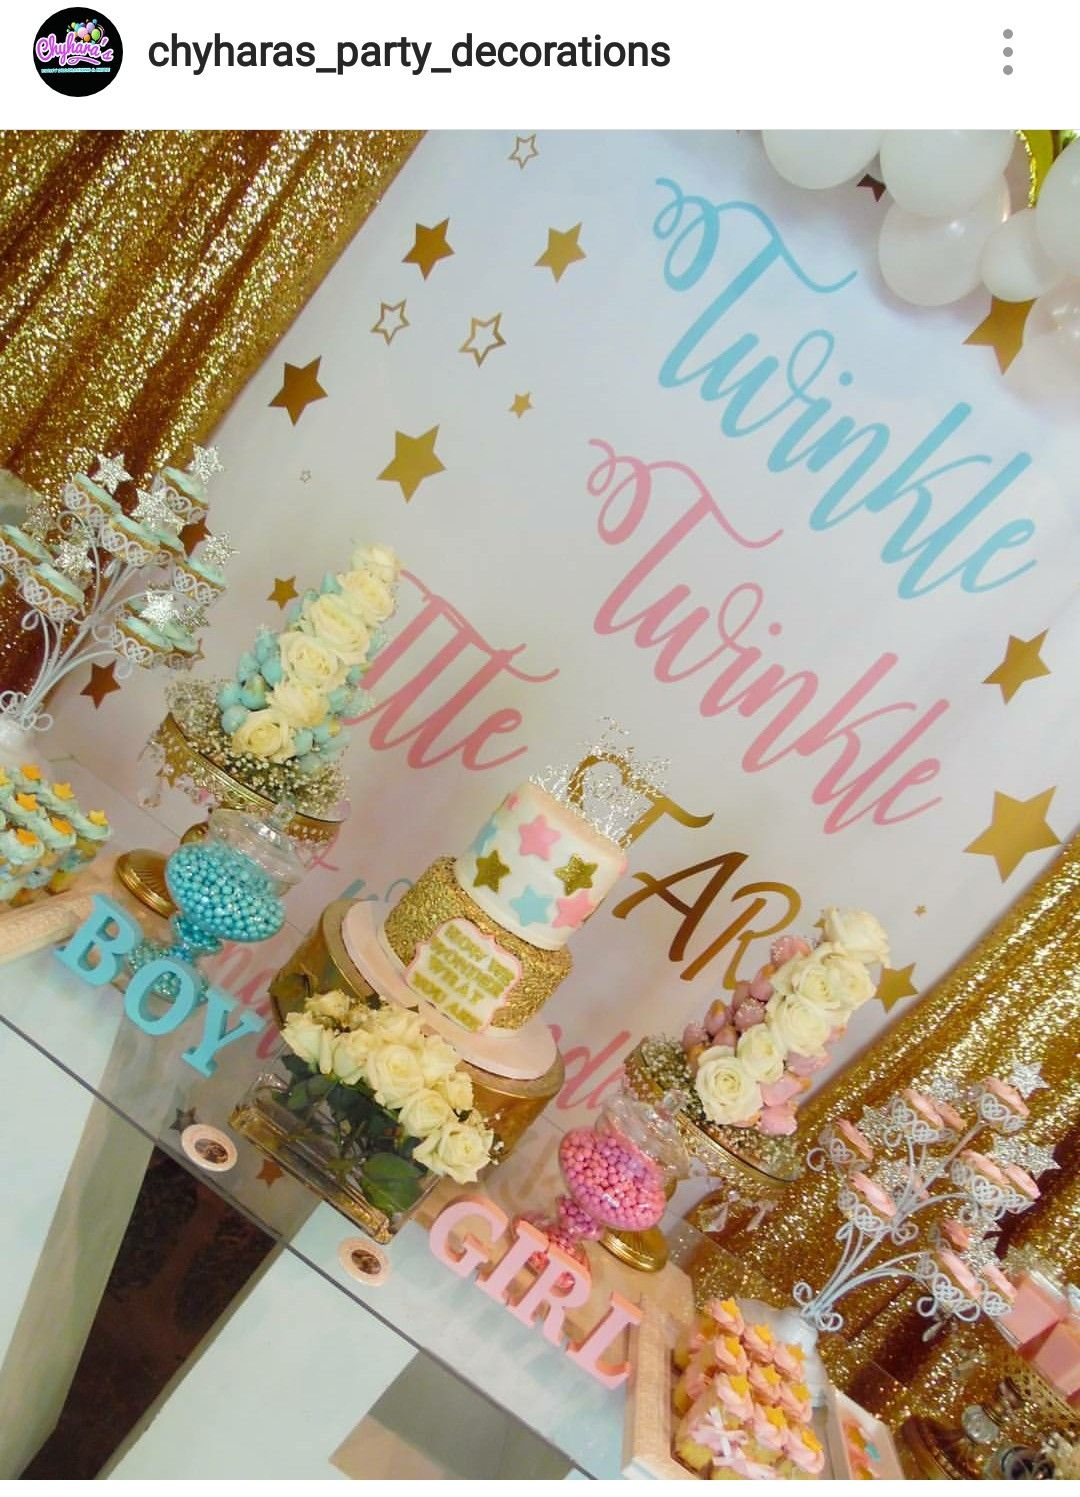 Twinkle Twinkle Little Star Gender Reveal Baby Reveal Party Baby Gender Reveal Party Gender Reveal Party Decorations